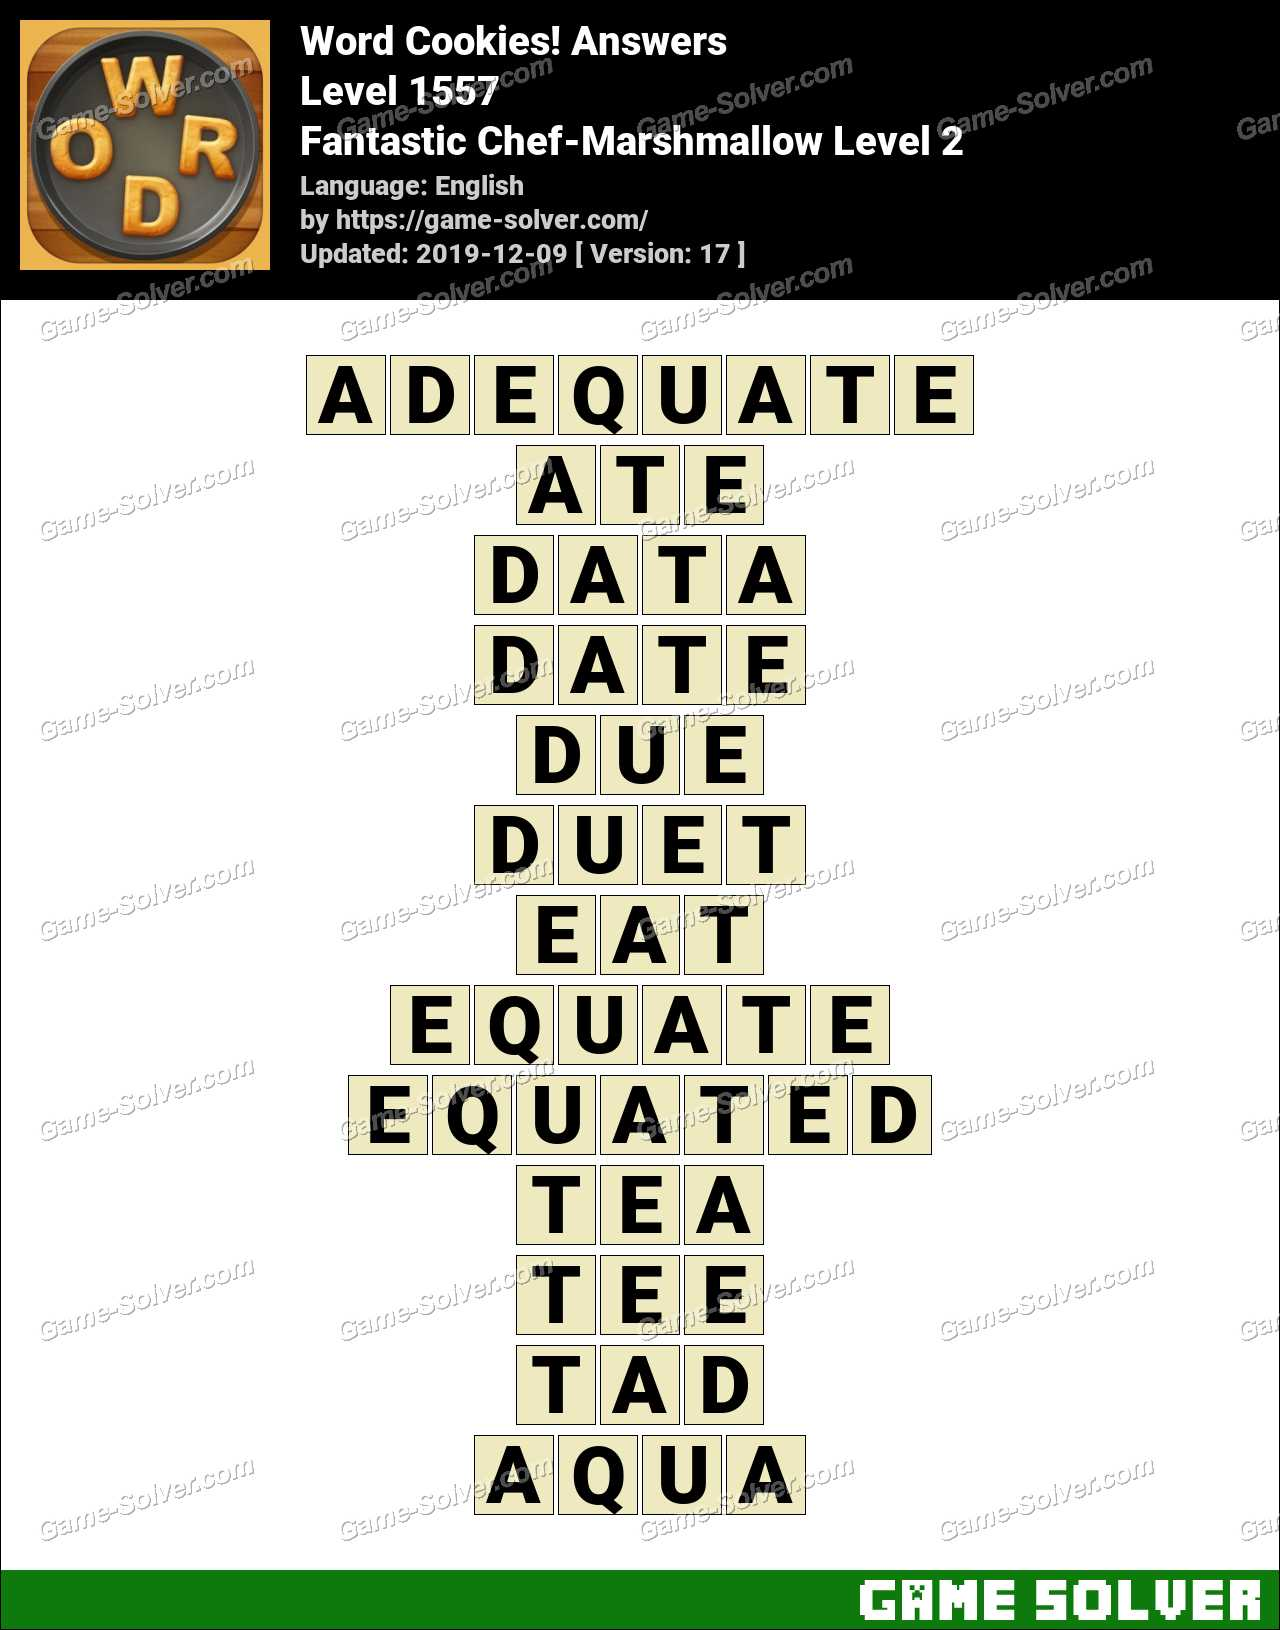 Word Cookies Fantastic Chef-Marshmallow Level 2 Answers